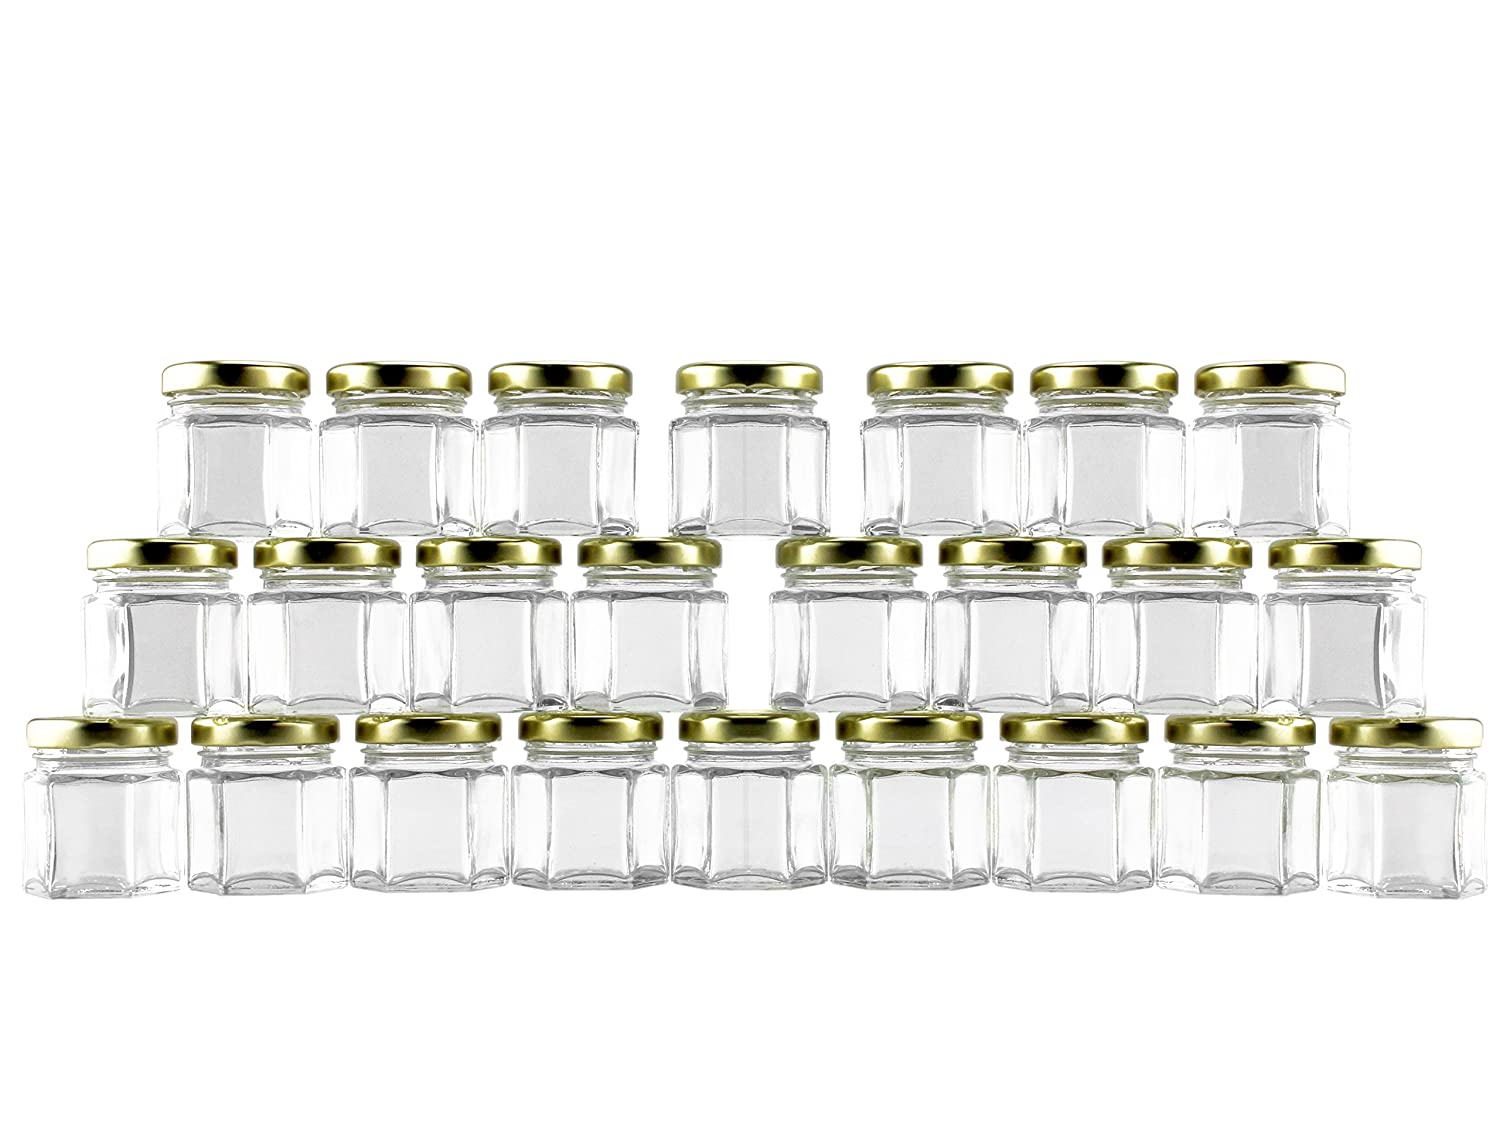 24 Mini Hexagon Glass Jars, 1.5oz Hex Jars (24-Pack) - for Spices, Gifts, Party Favors, DIY & more